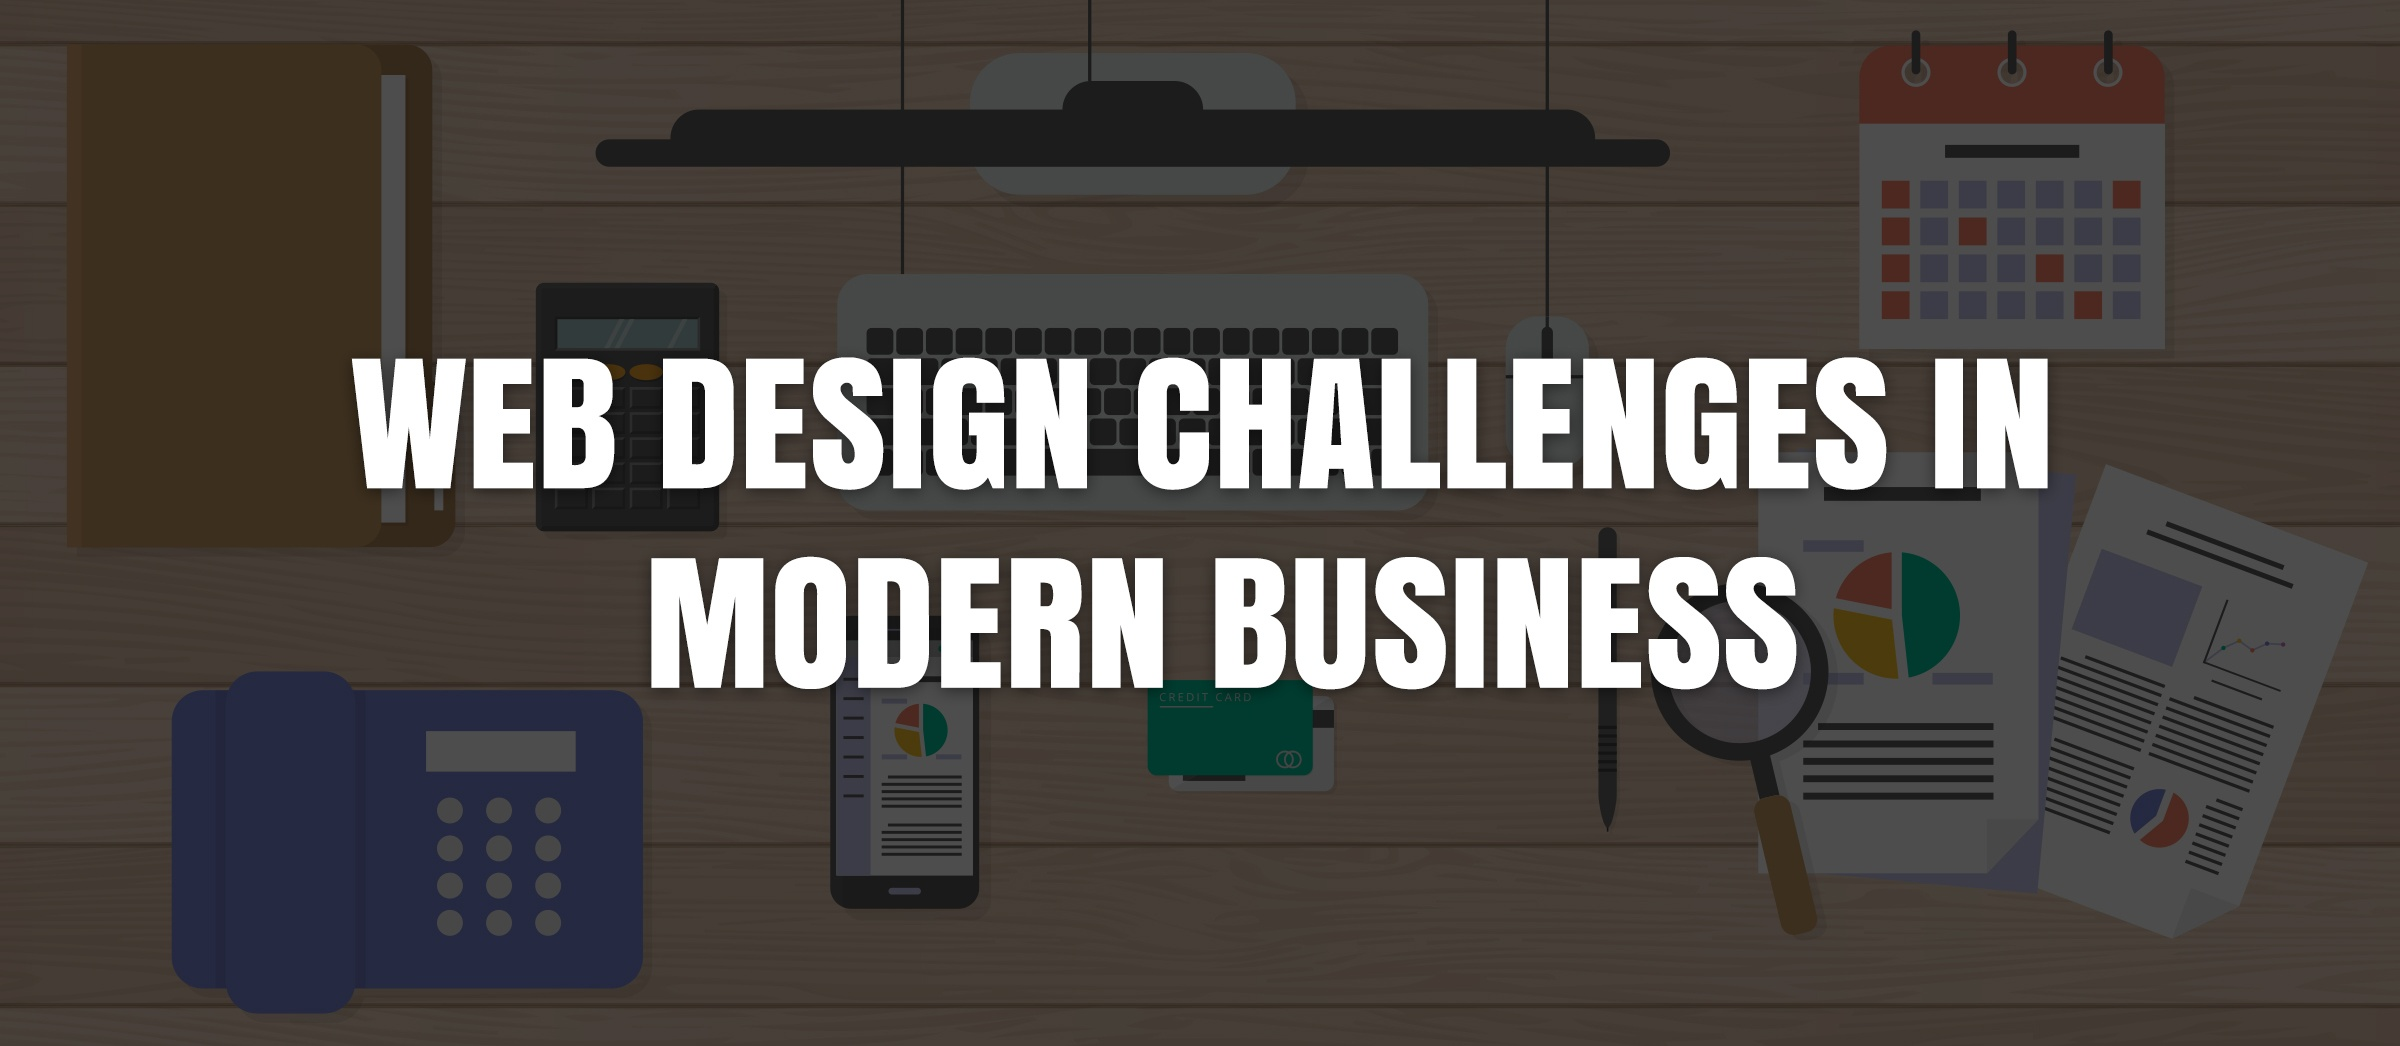 Web design challenges in modern business